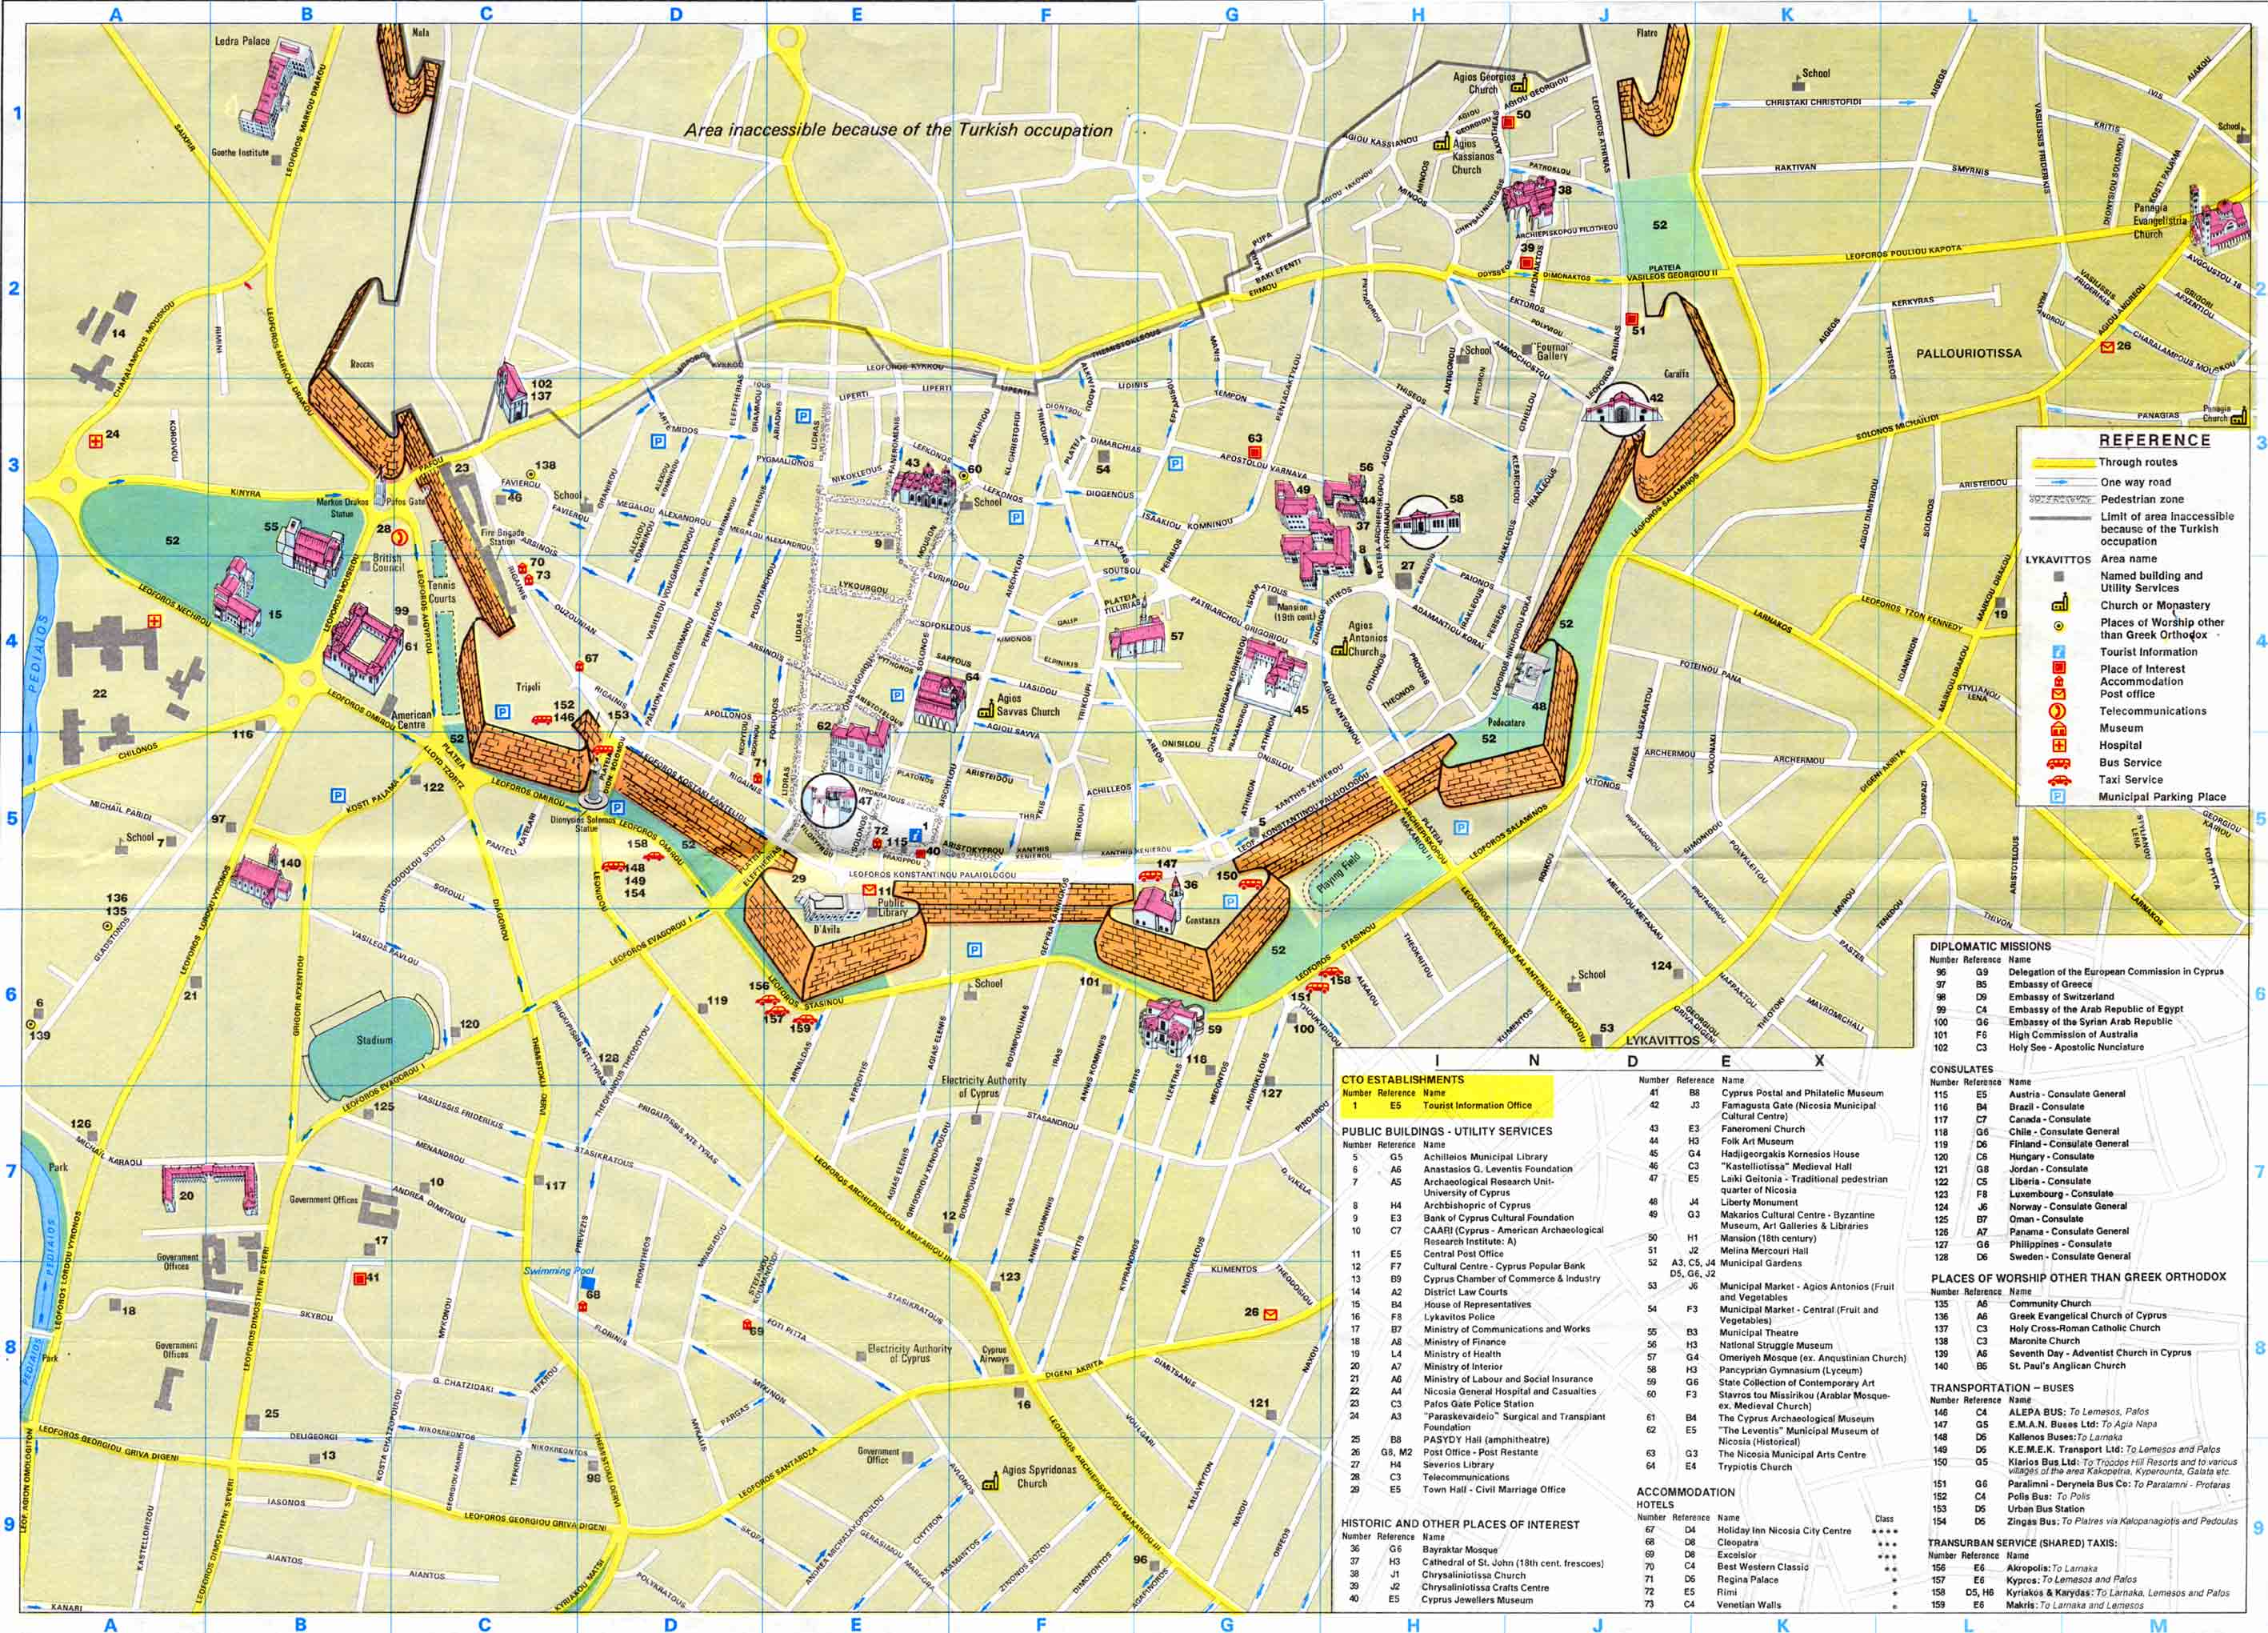 transportation maps, social media maps, networking maps, driving directions maps, maps maps, google maps, al maps, home maps, travel maps, education maps, advertising maps, weather maps, zip codes maps, on yellow pages maps street view